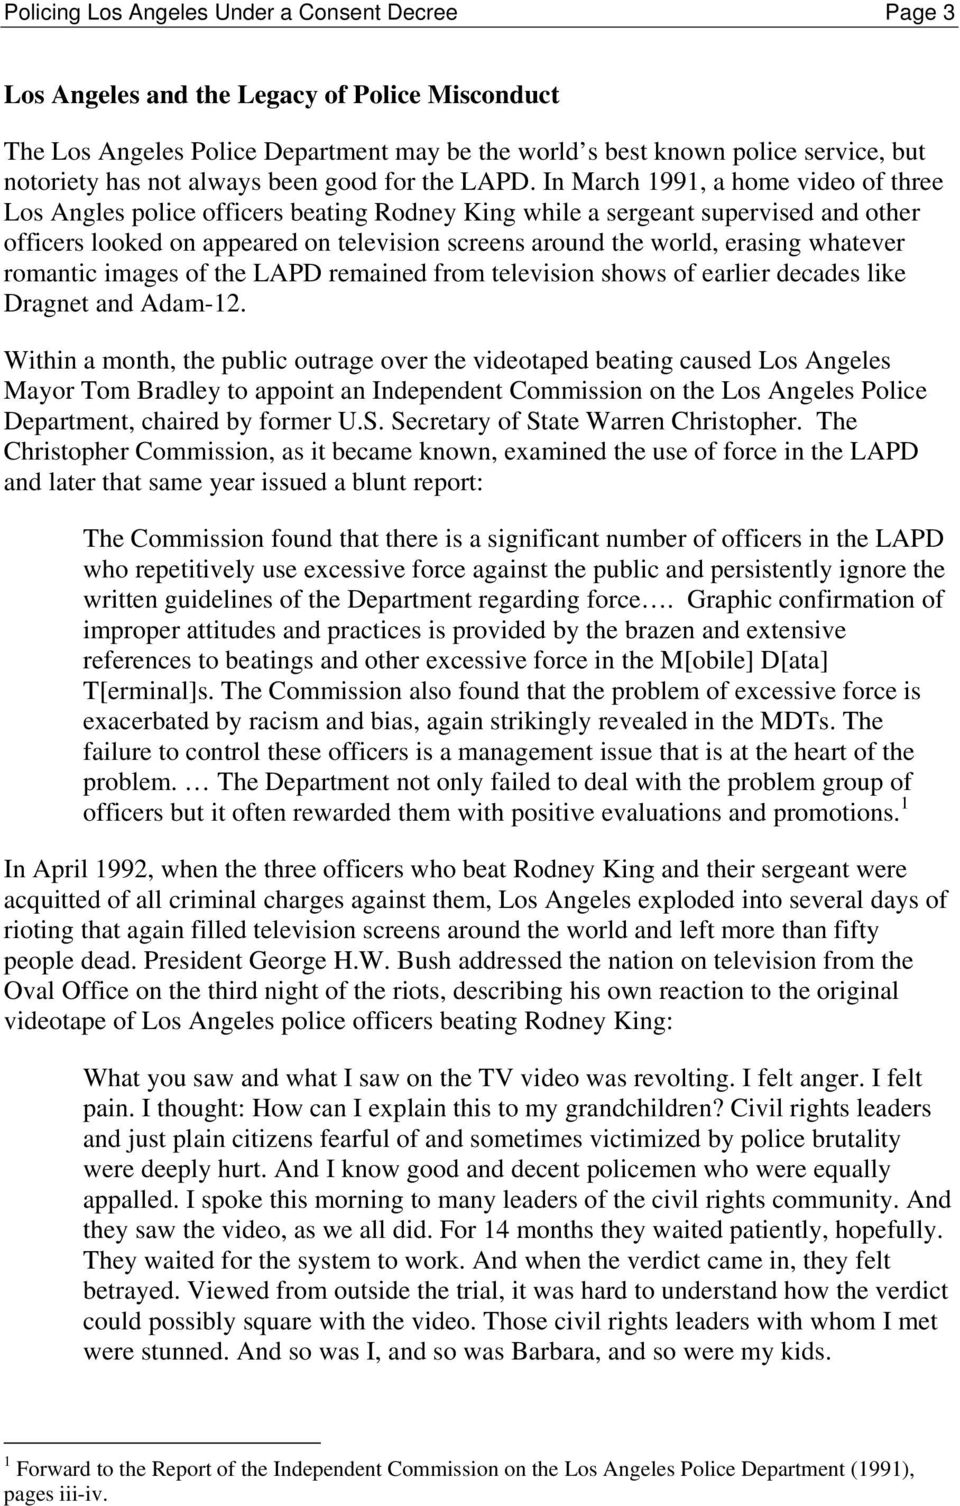 In March 1991, a home video of three Los Angles police officers beating Rodney King while a sergeant supervised and other officers looked on appeared on television screens around the world, erasing